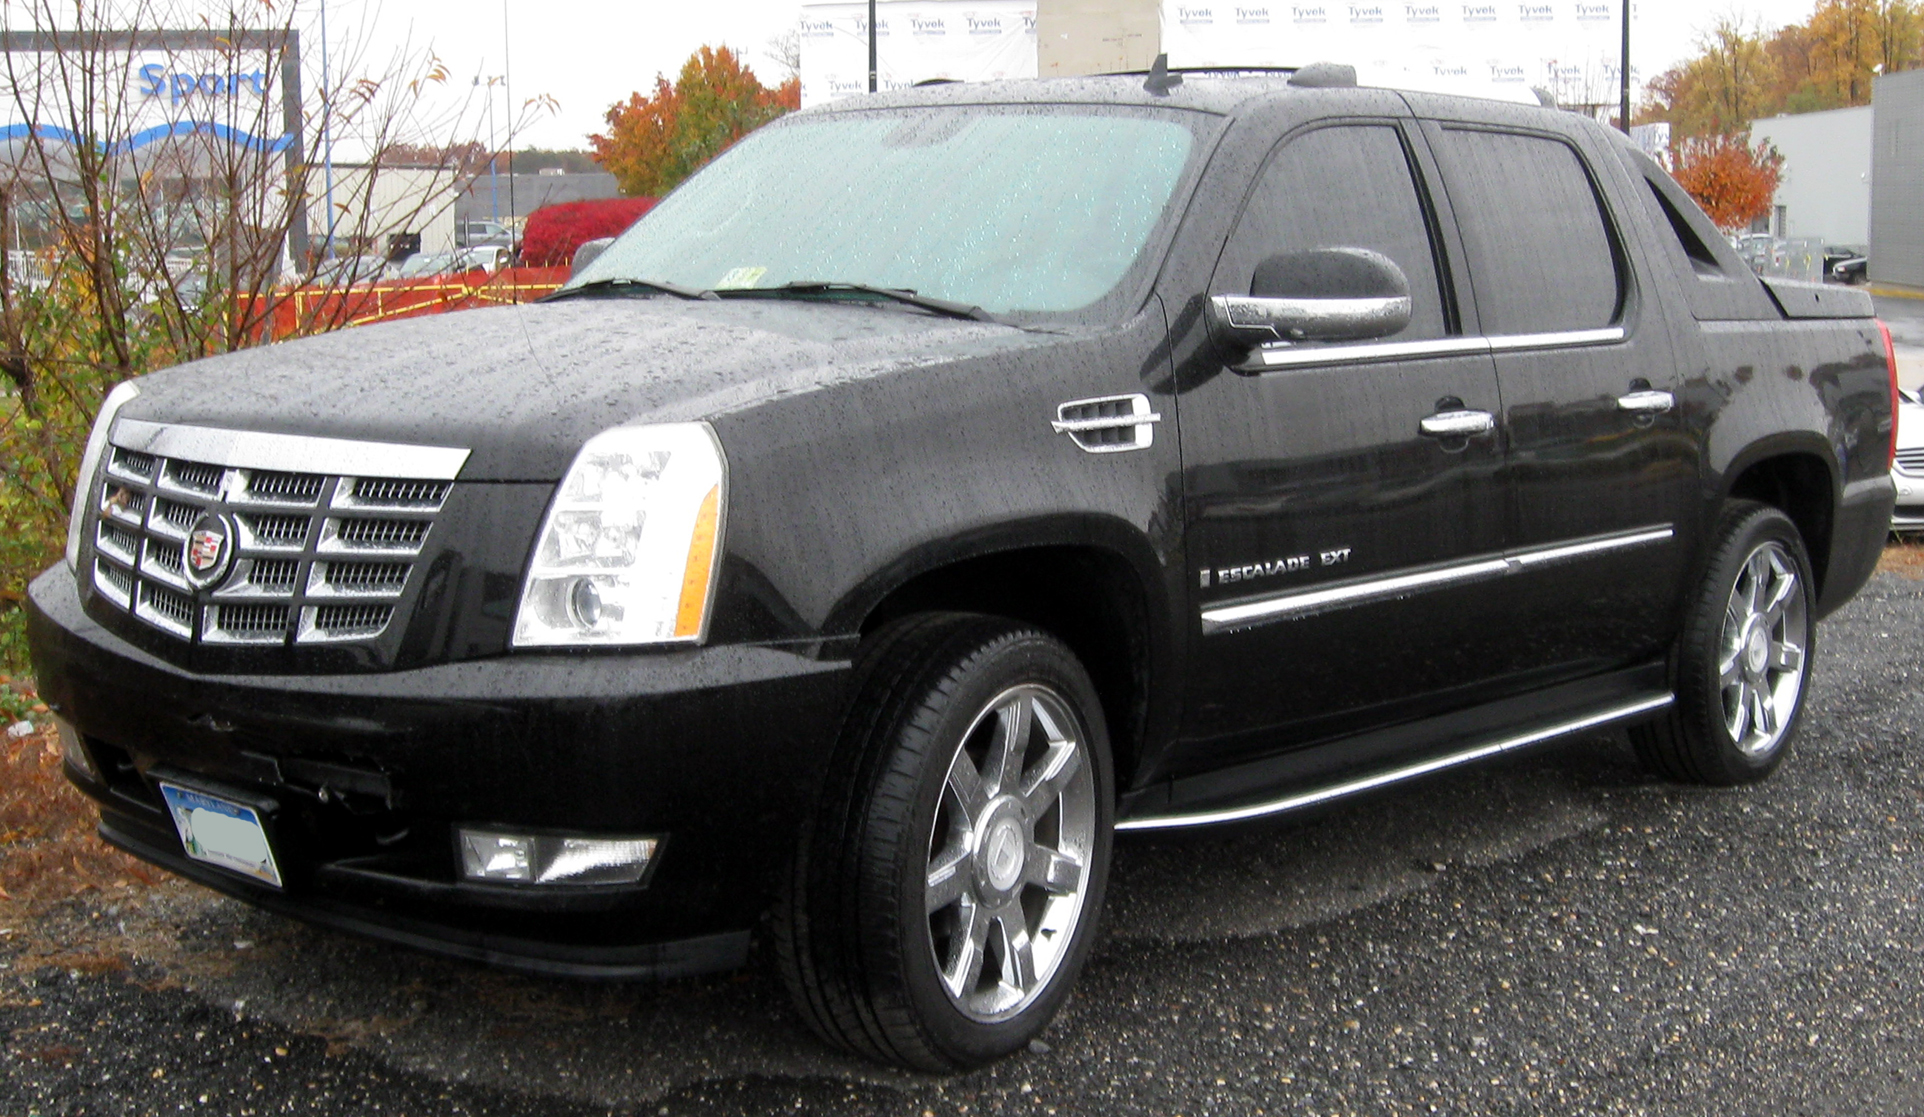 File 2nd cadillac escalade ext 11 10 2011 jpg wikimedia commons